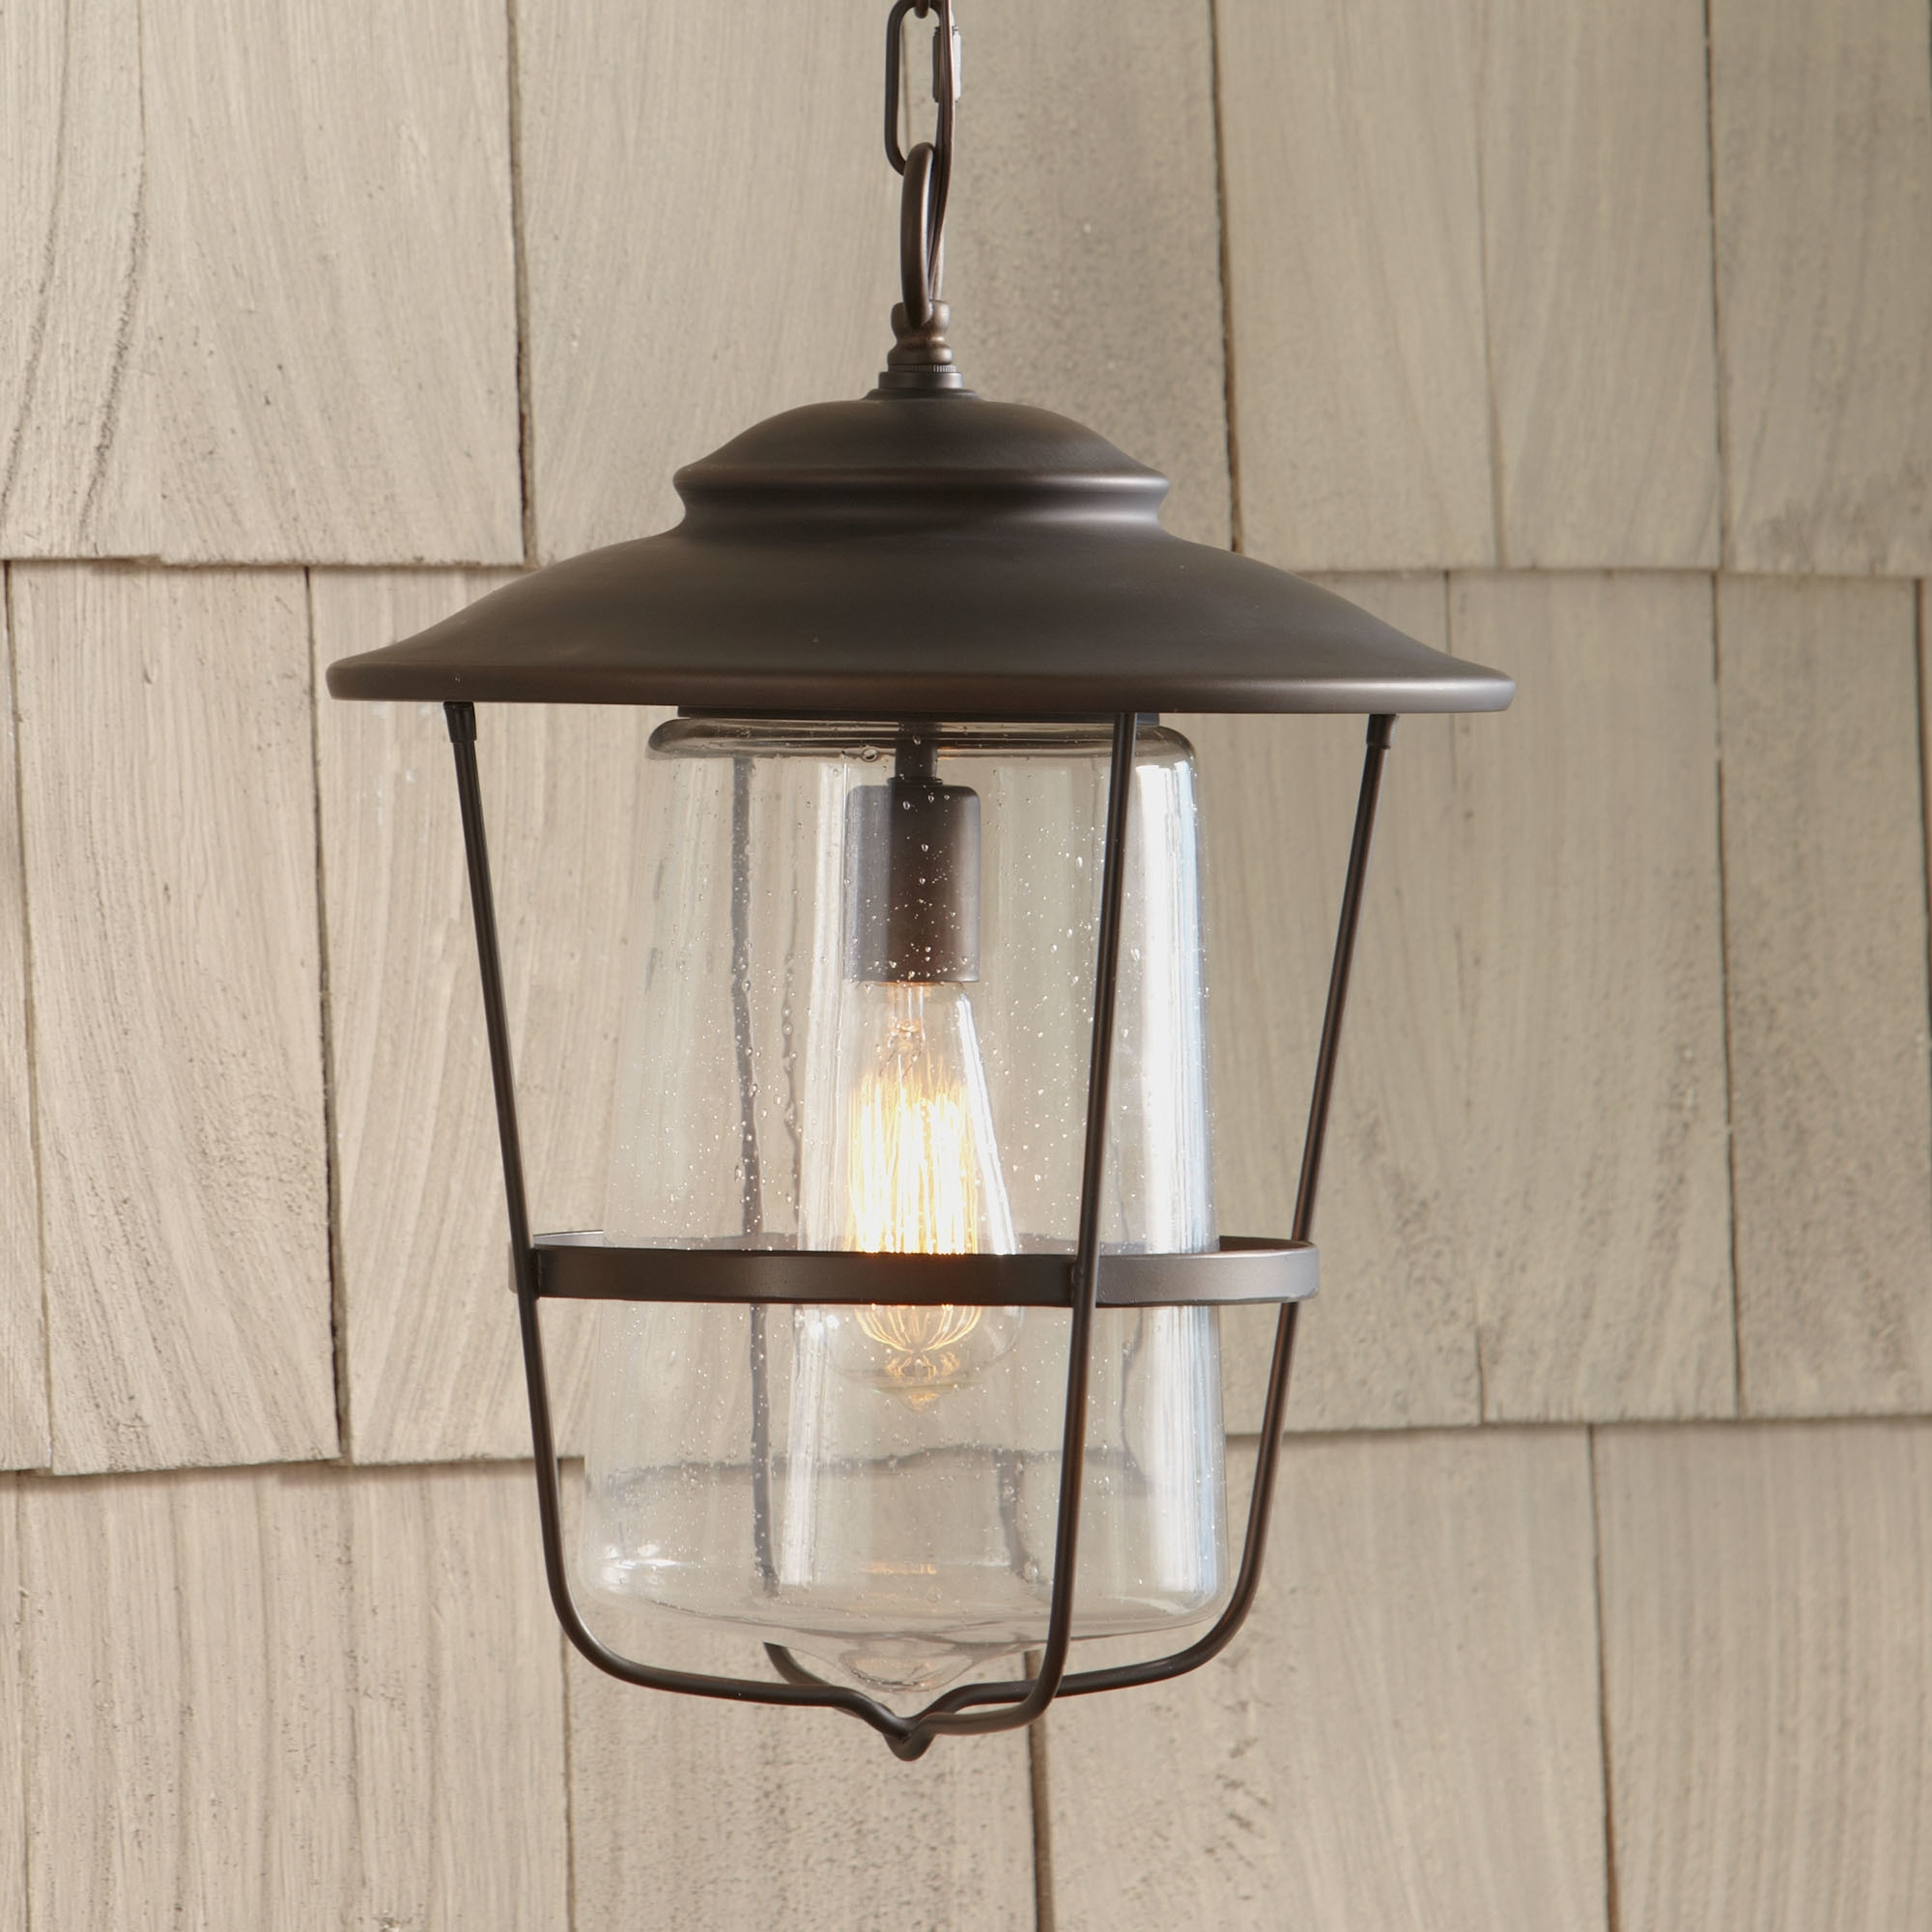 Outdoor Hanging Lights Wayfair Remington Lantern ~ Loversiq Intended For Inexpensive Outdoor Hanging Lights (View 15 of 15)